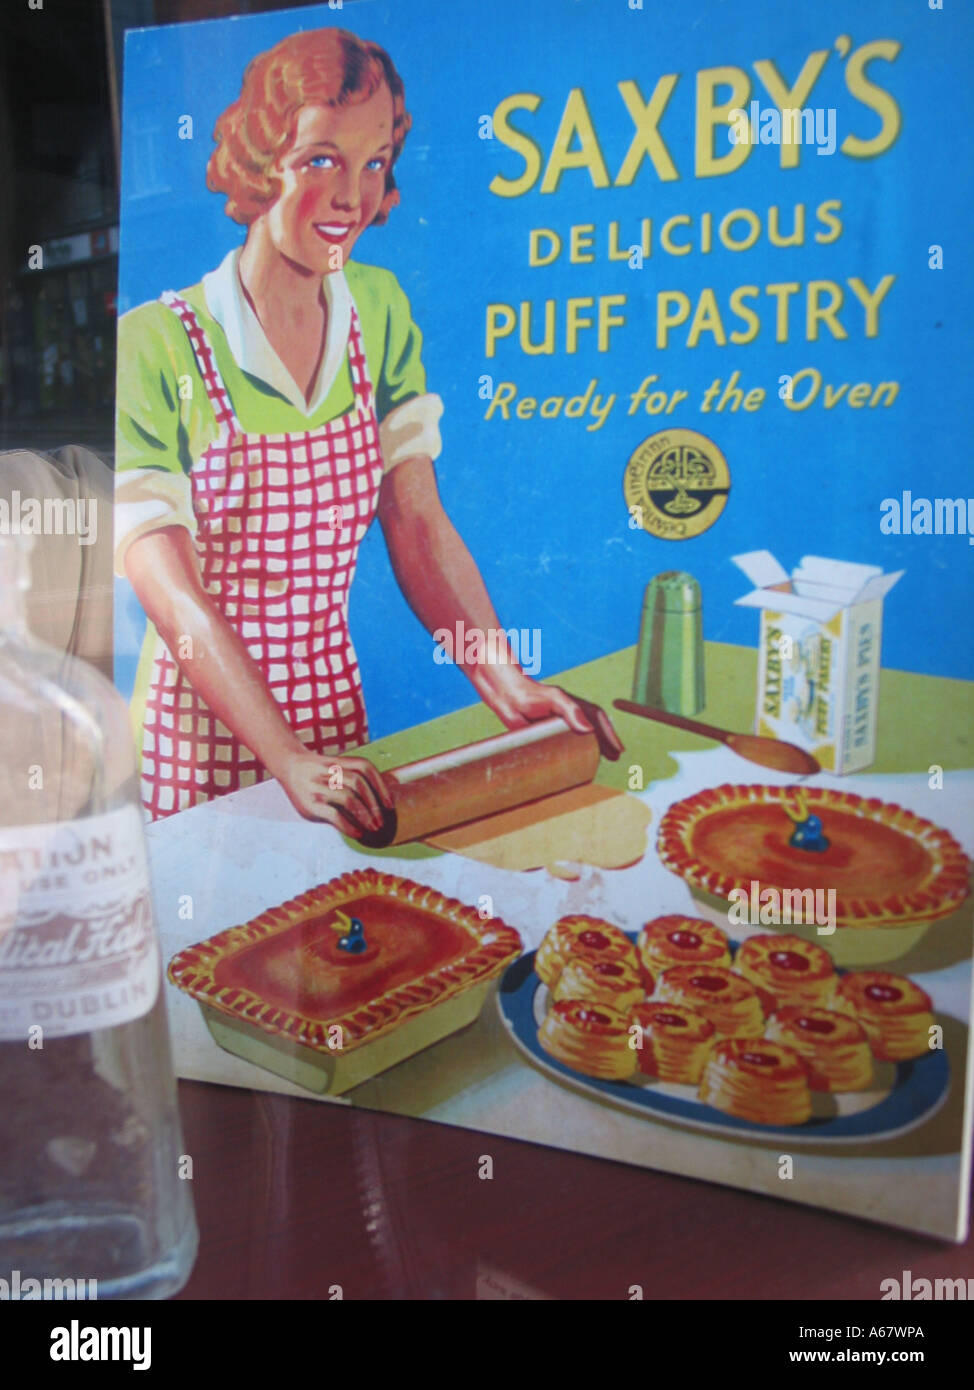 vintage style advertisement in shop window display for Saxby's home baking products Dublin Ireland - Stock Image